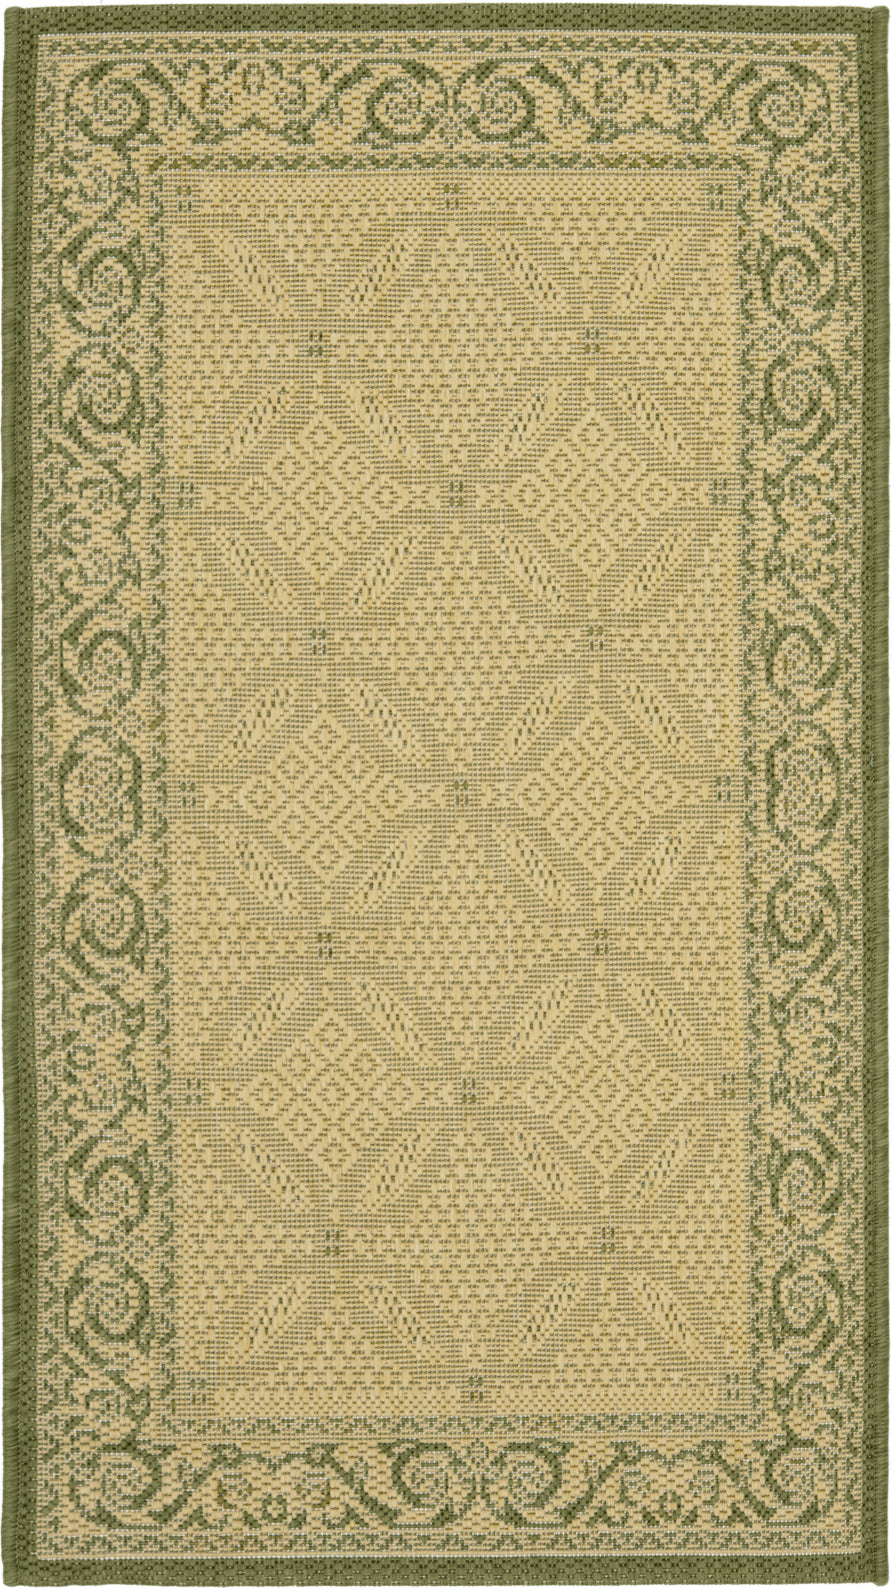 Safavieh Courtyard CY1502 Natural/Olive Area Rug main image